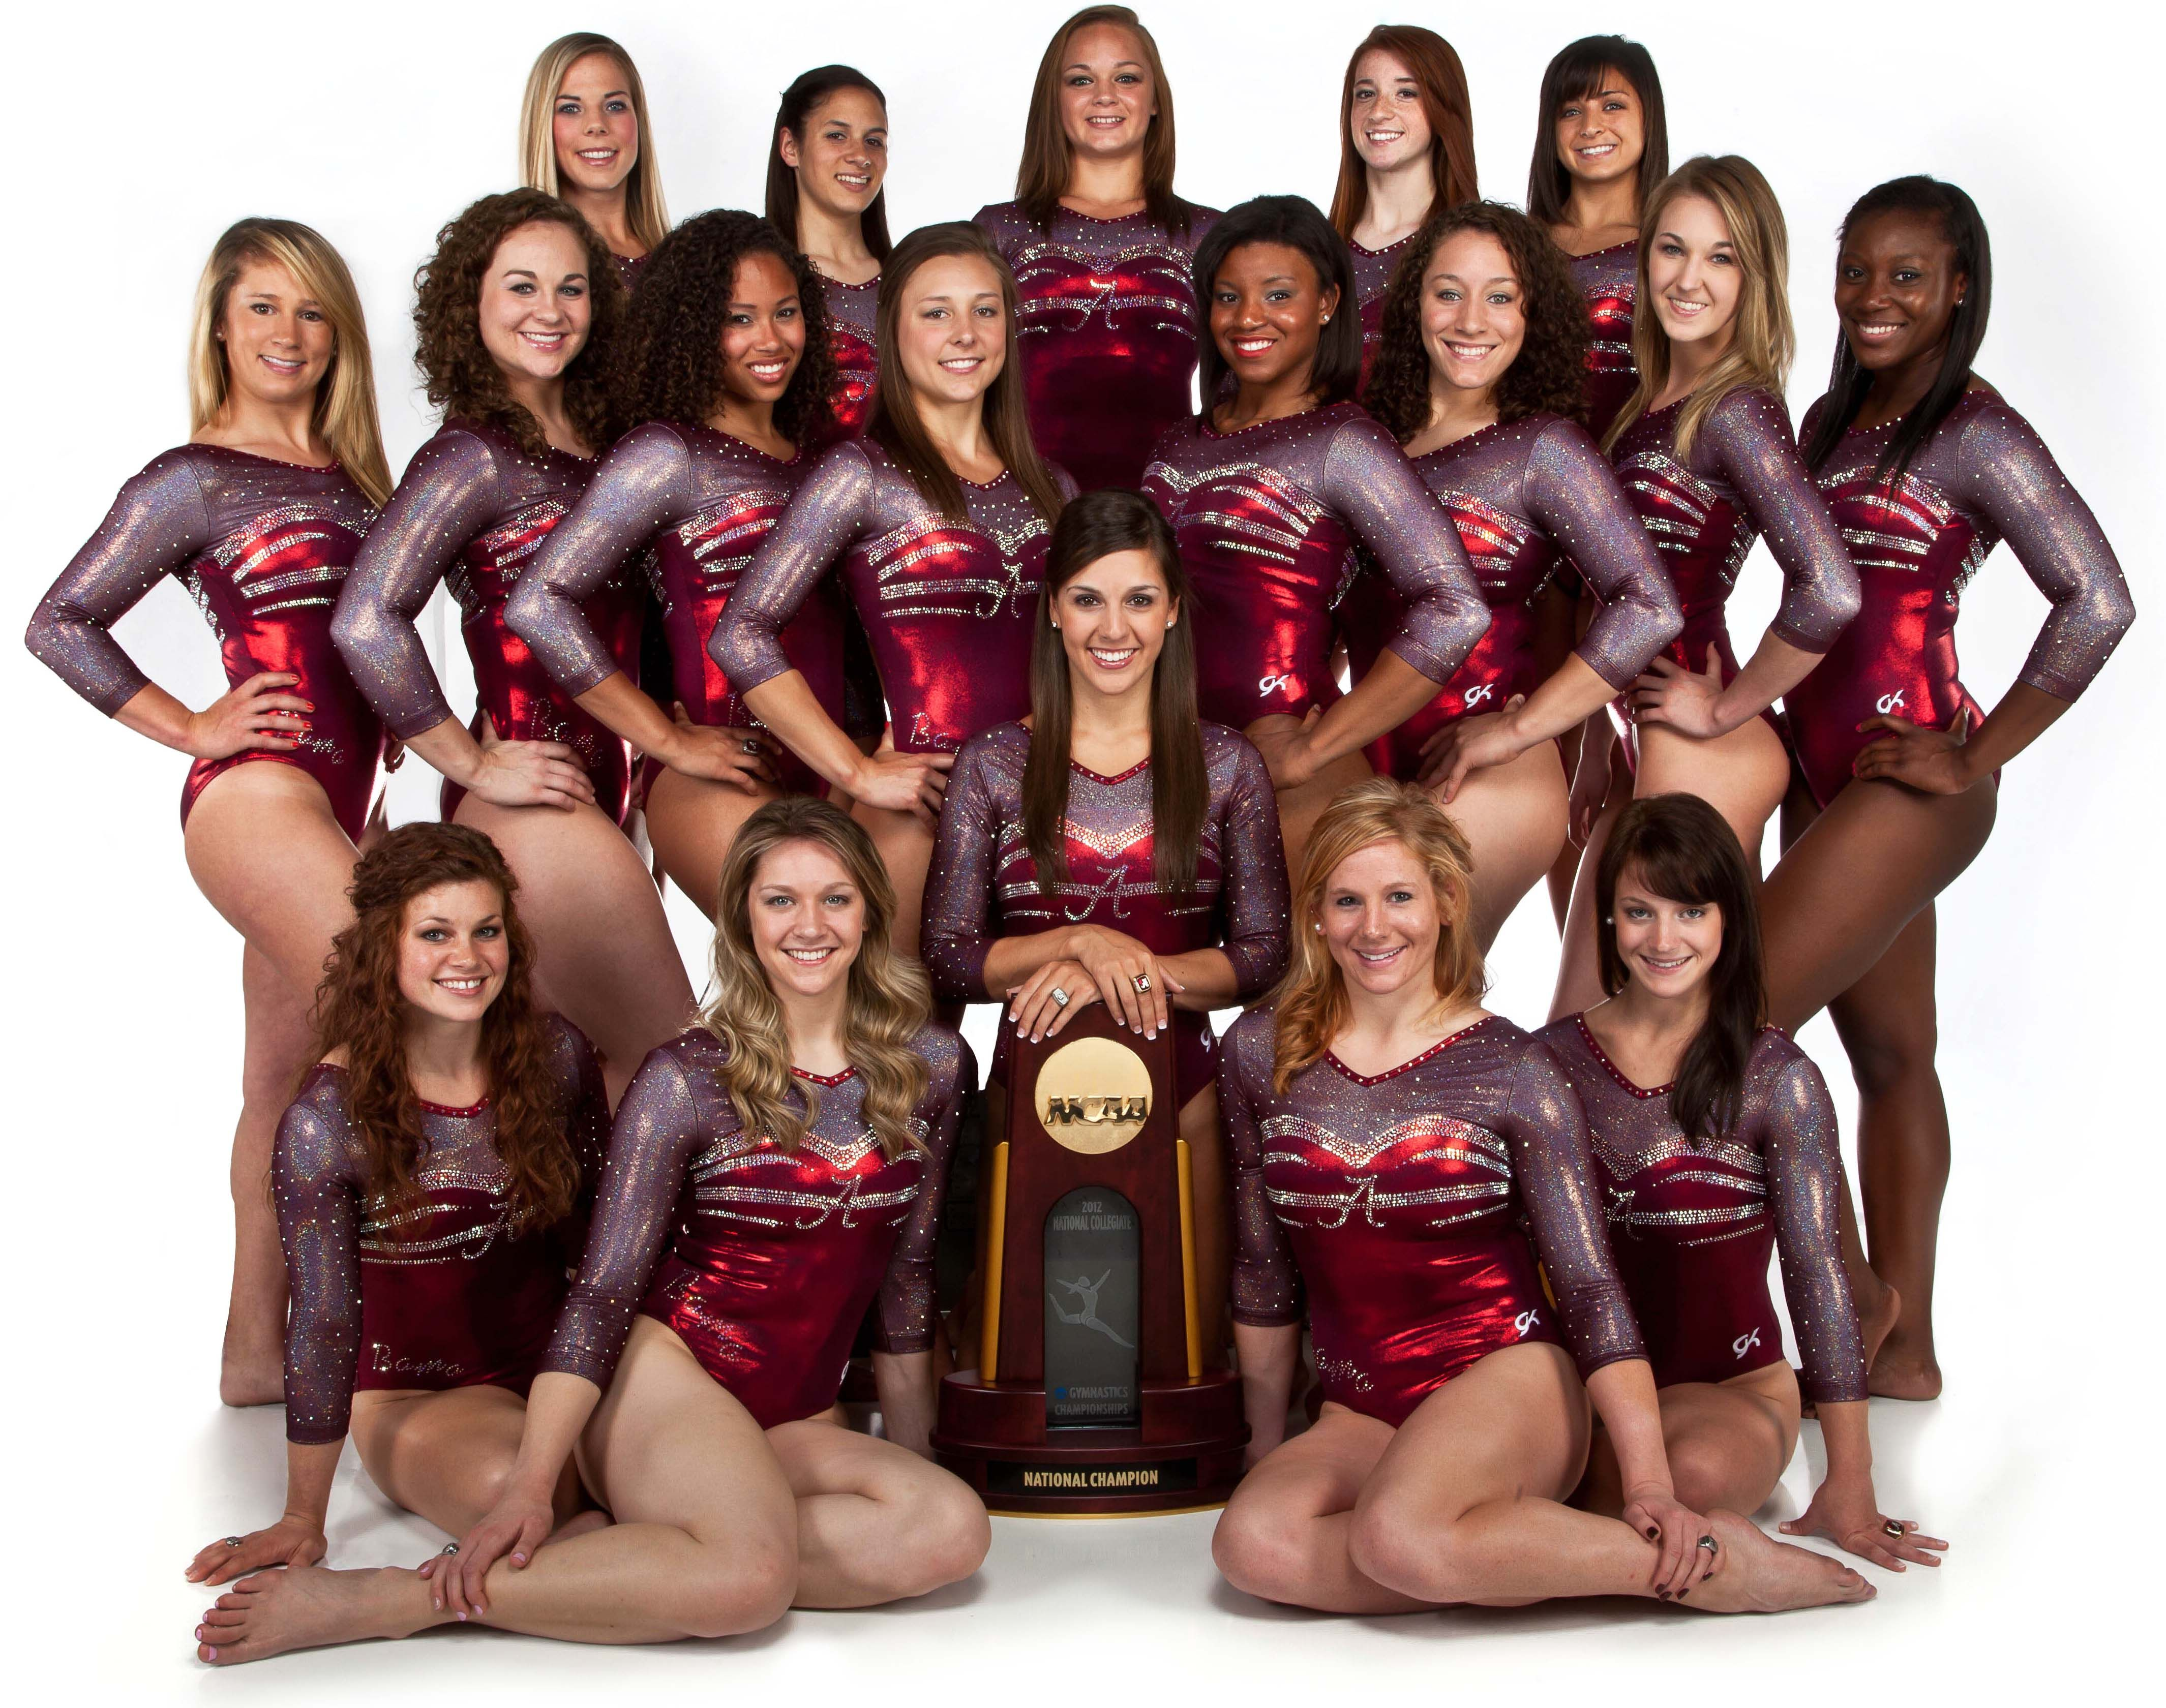 Alabama rolls in sixth national title! 2012 NCAA Women's Gymnastics  Champions - Alabama repeats as National Champions when the Crimson Tide  squeezed by ...